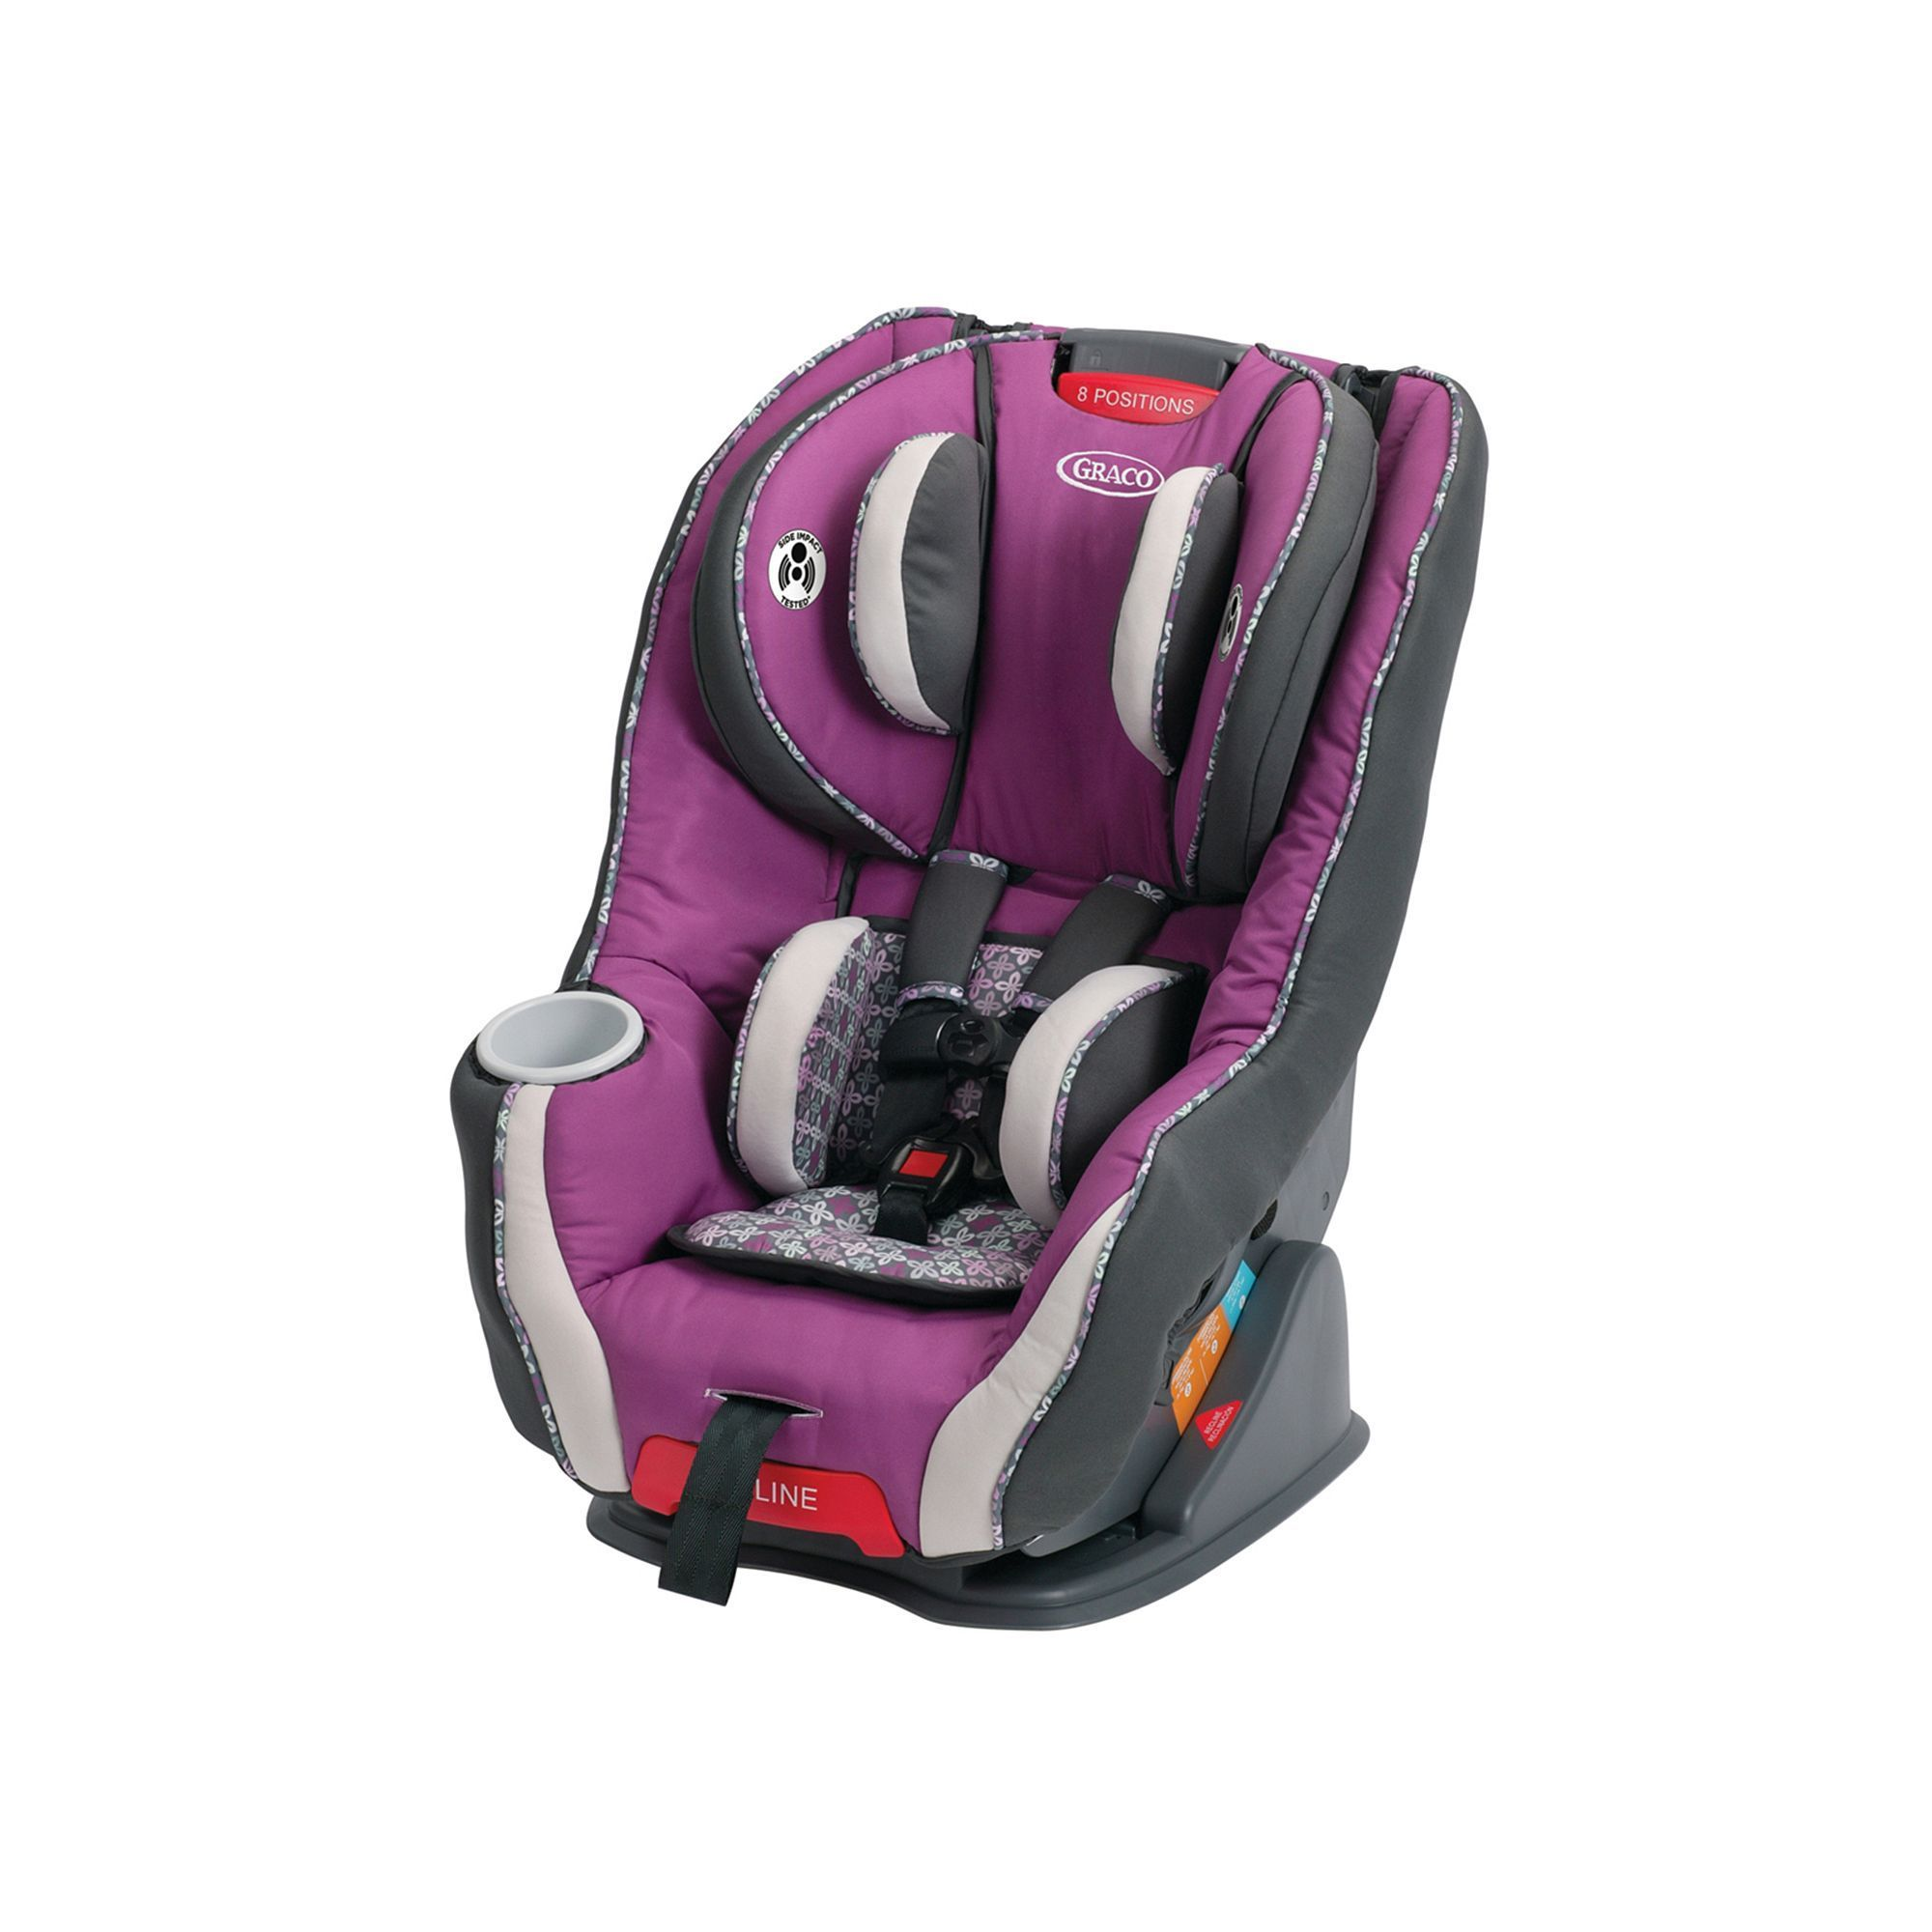 Neat Graco Convertible Car Brt Pink Graco Convertible Car Brt Pink Products Graco Size4me 65 Convertible Car Seat Manual Graco Size4me 65 Convertible Car Seat Featuring Rapidremove baby Graco Size4me 65 Convertible Car Seat